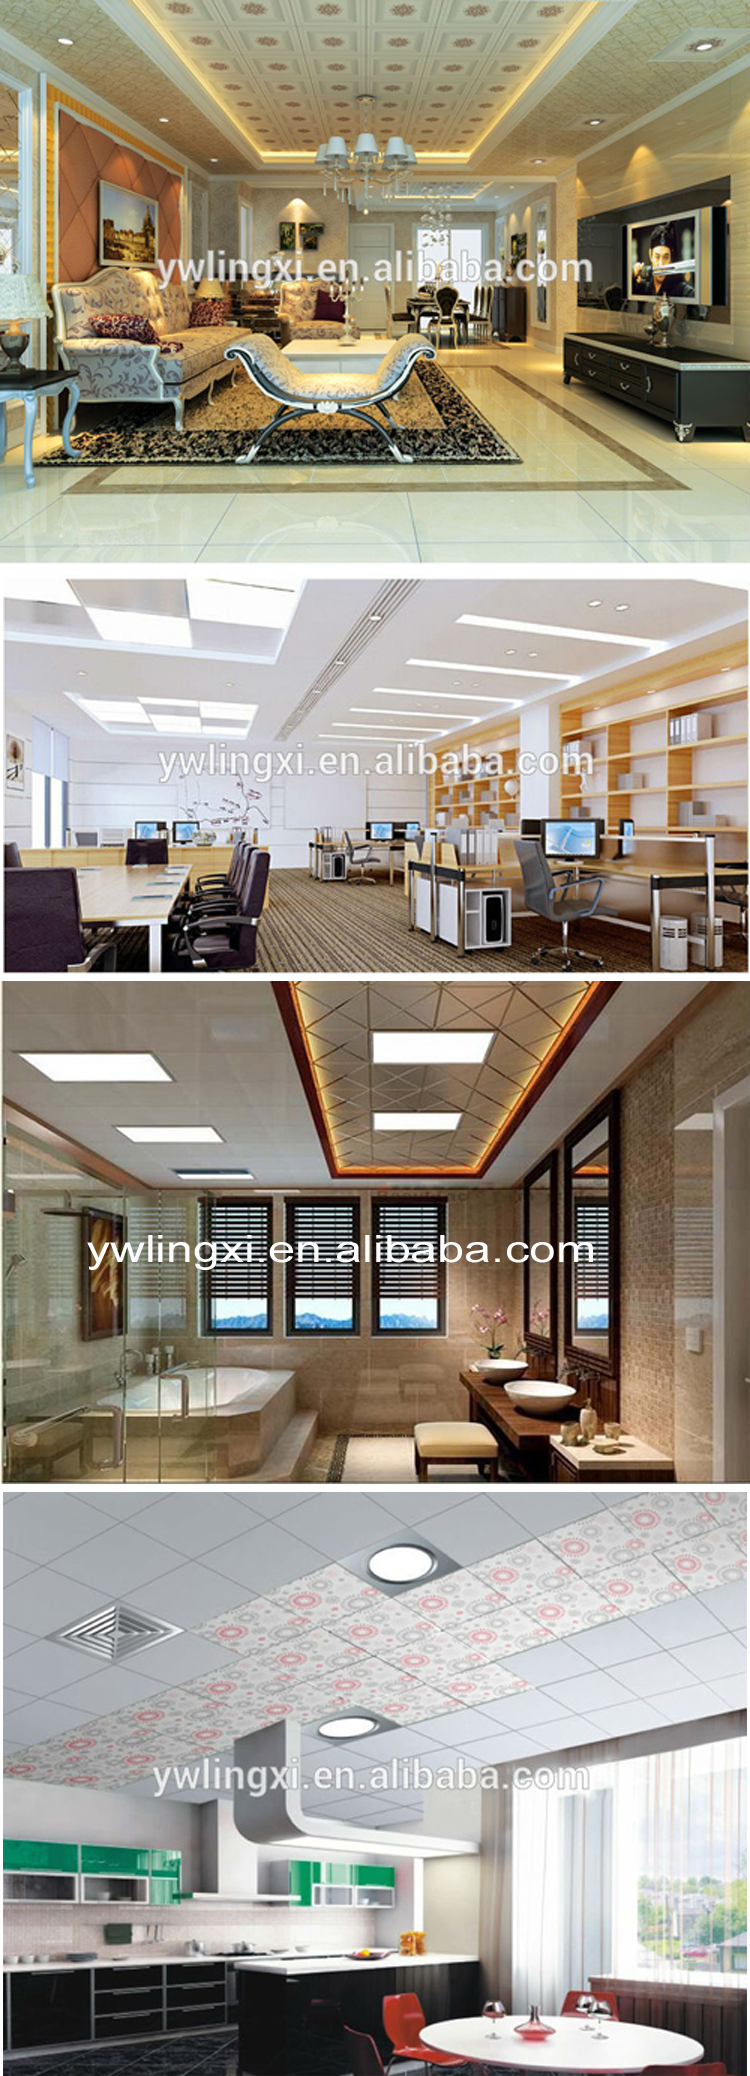 Best price new design art fireproof ceiling tilesaluminum t bar best price new design art fireproof ceiling tiles aluminum t bar ceiling acoustic dailygadgetfo Choice Image